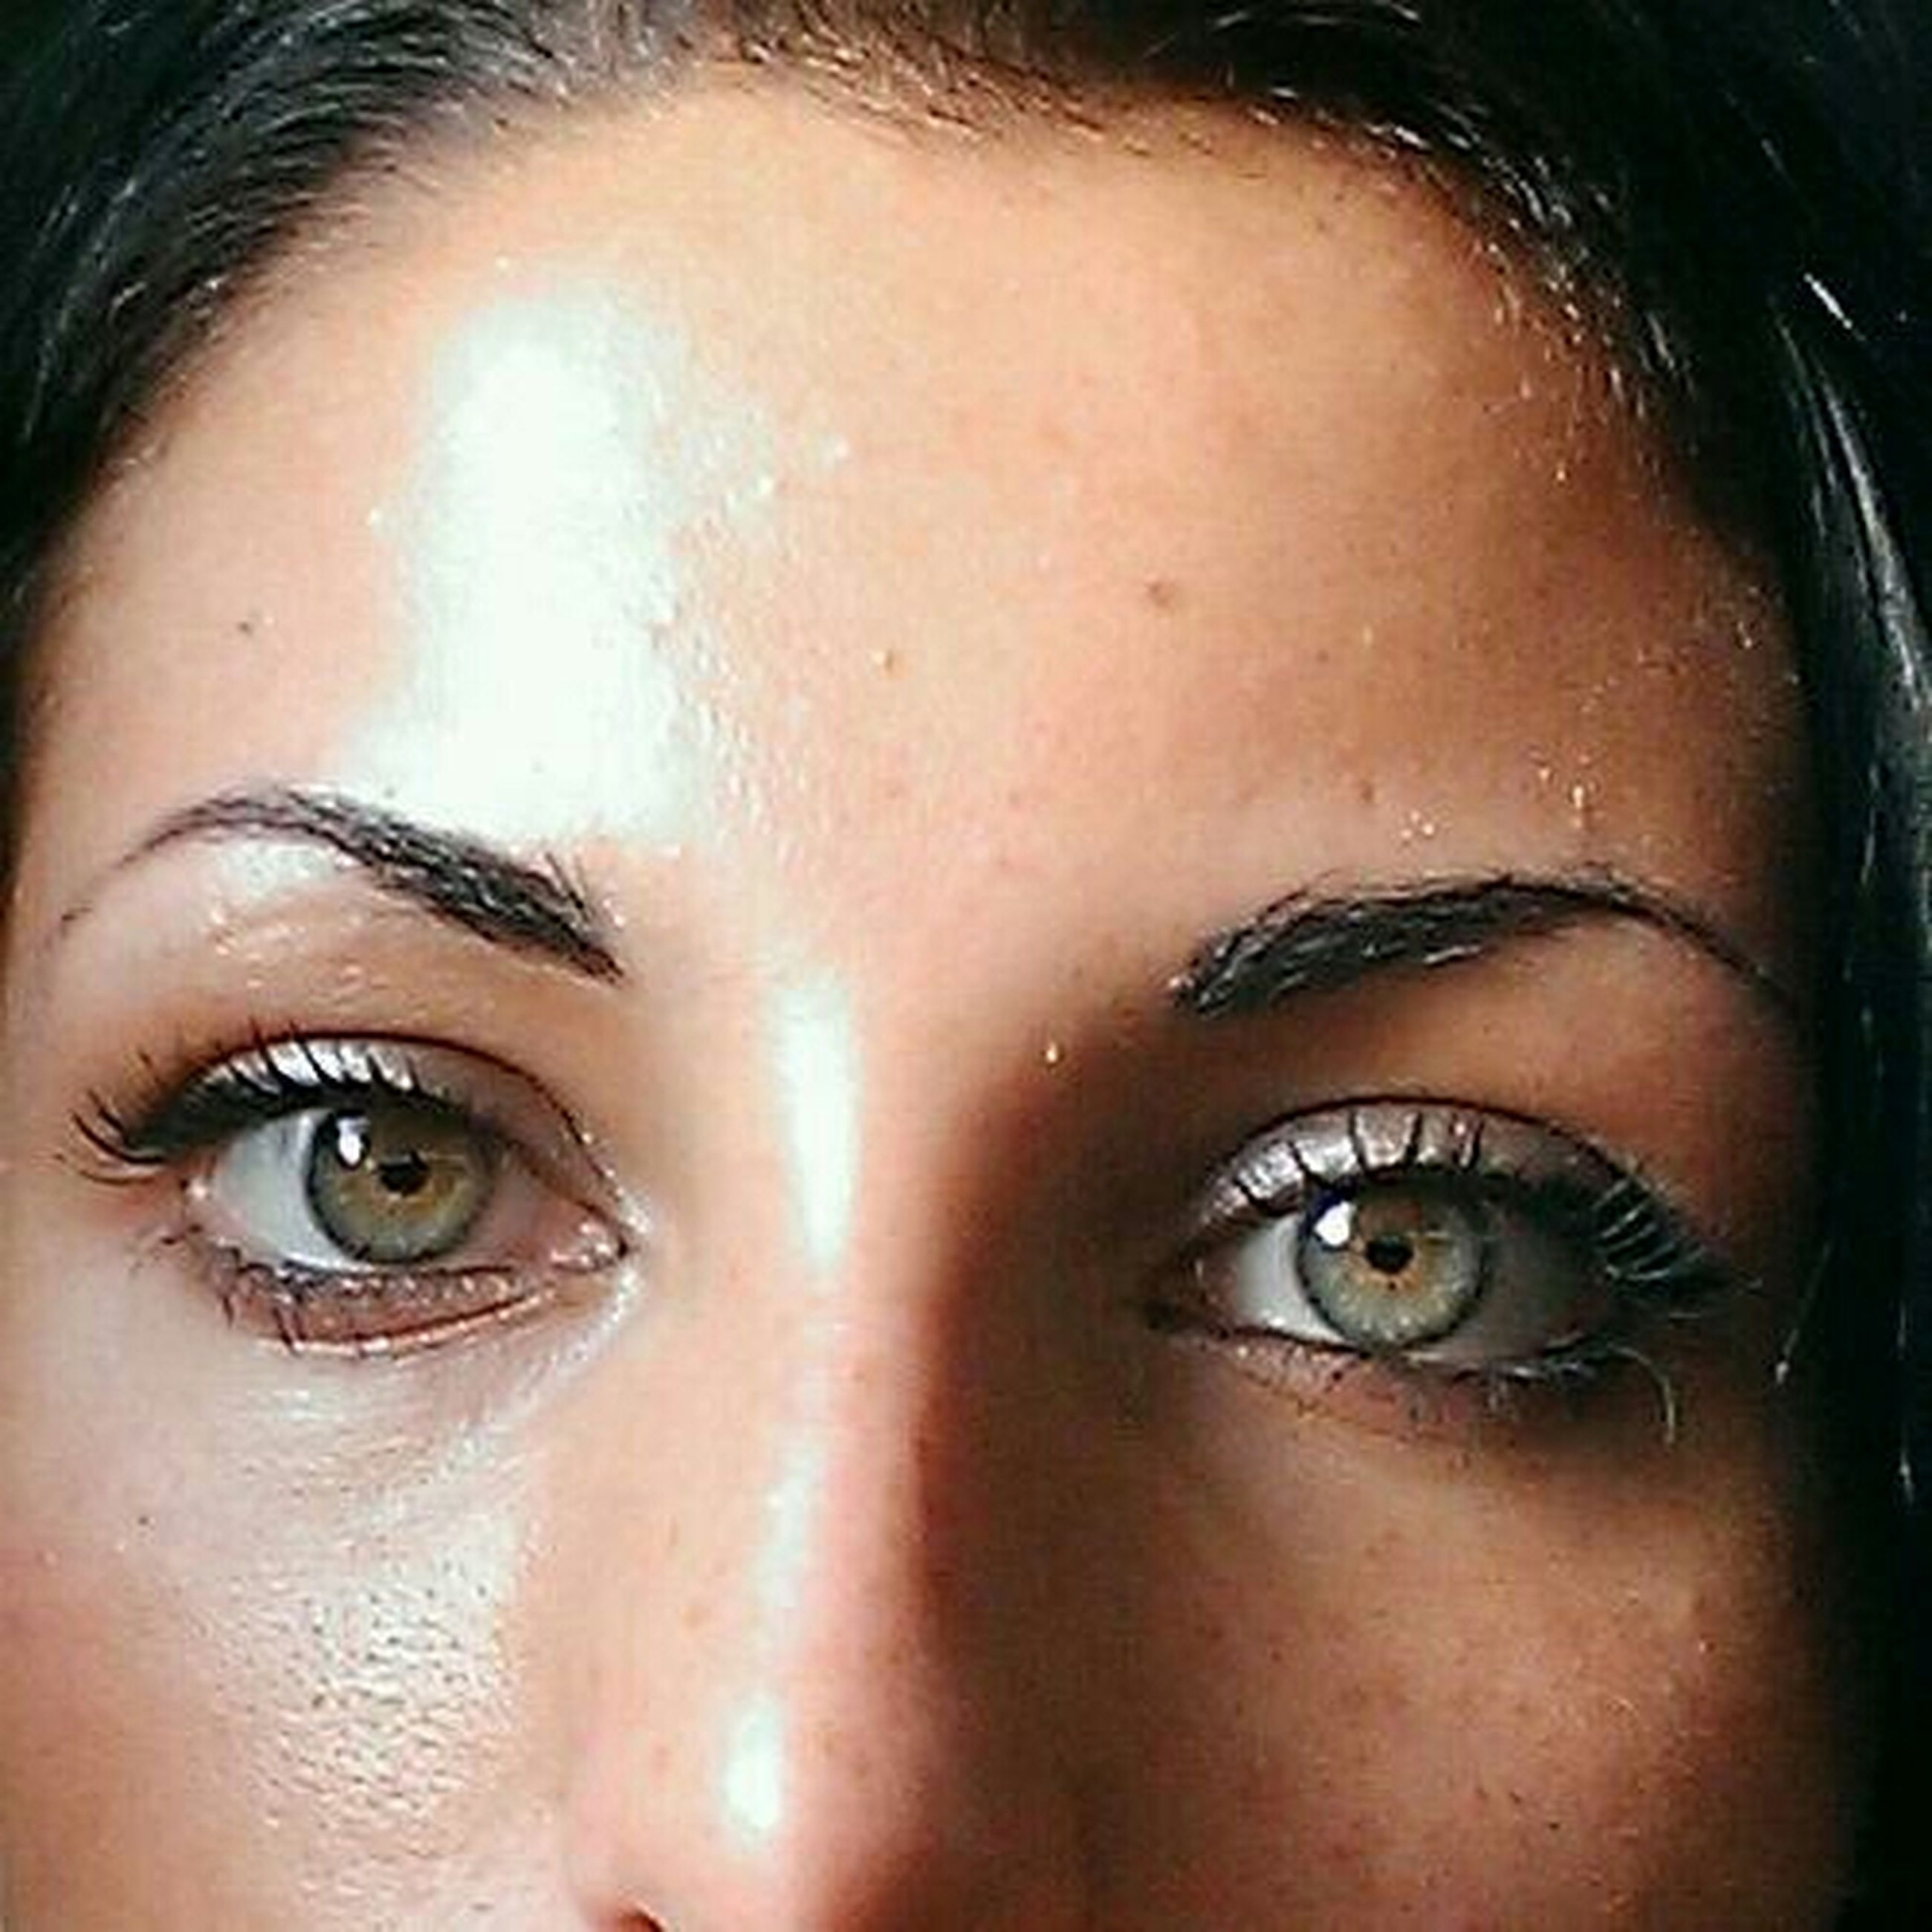 close-up, lifestyles, part of, human eye, human face, person, headshot, leisure activity, human skin, looking at camera, young adult, portrait, indoors, young women, cropped, front view